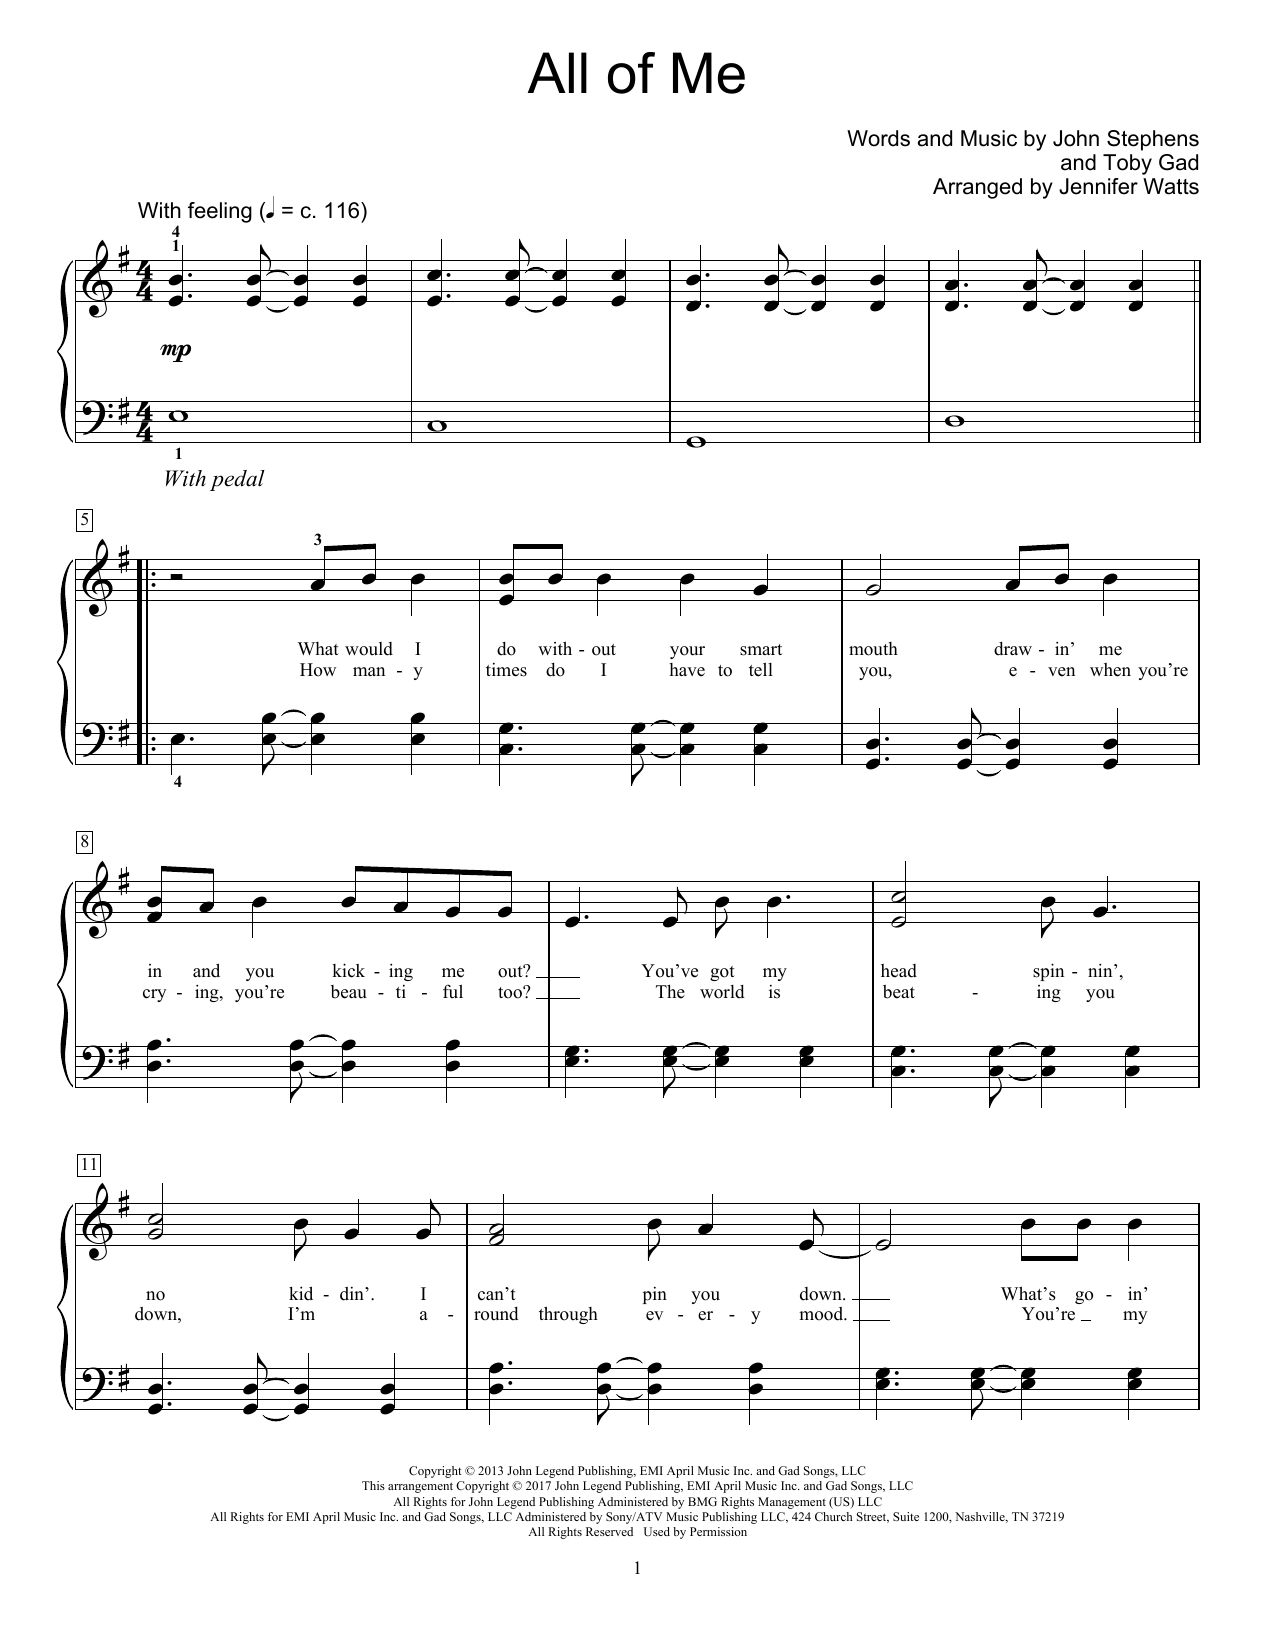 Sheet music digital files to print licensed john stephens sheet music digital files to print licensed john stephens digital sheet music hexwebz Image collections